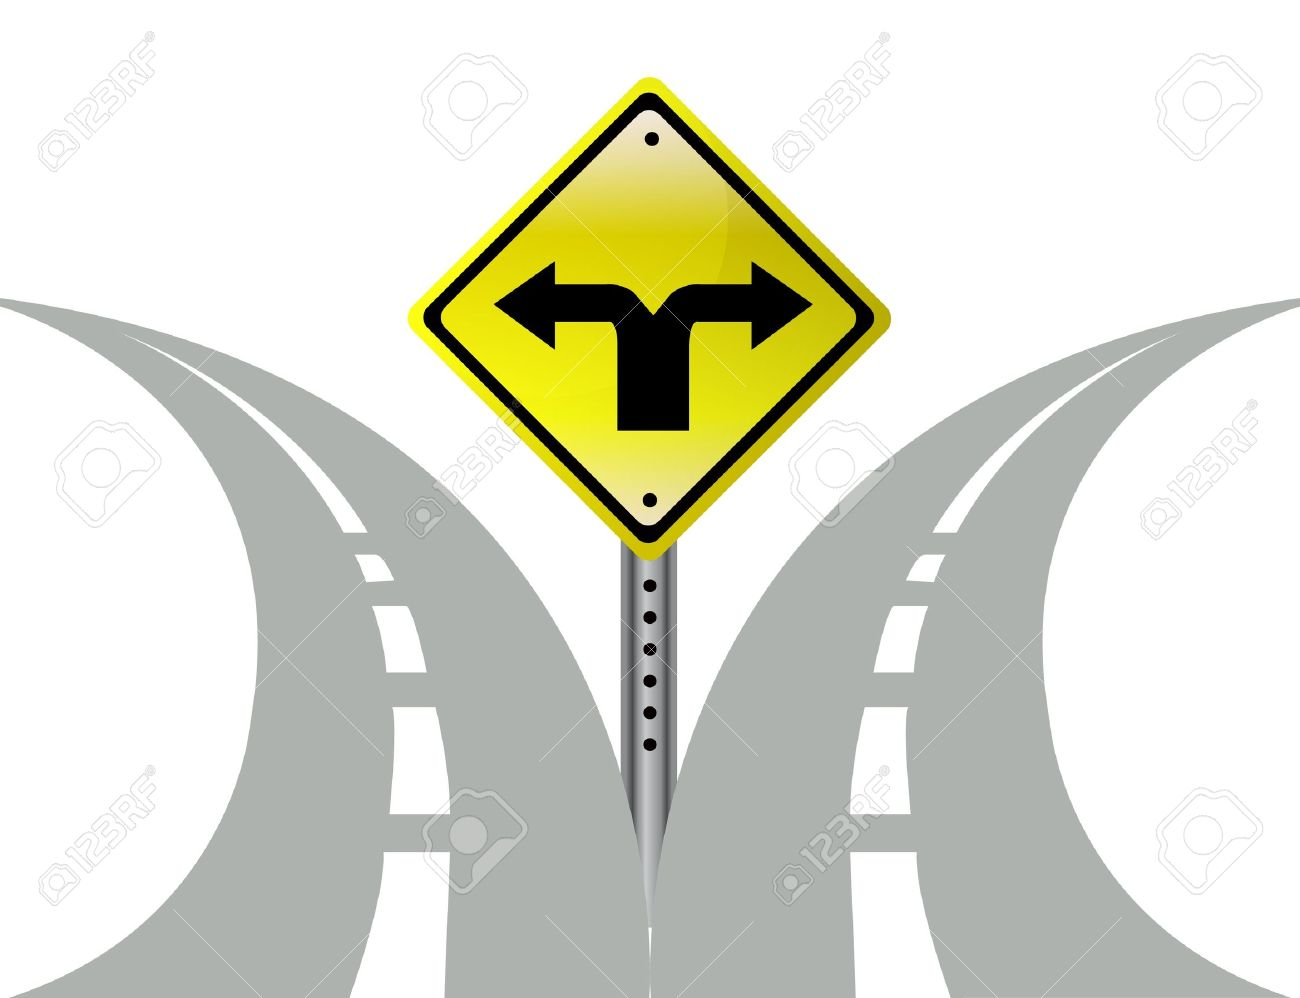 Pathway clipart multiple path Cliparts Decision Two Clipart Decision